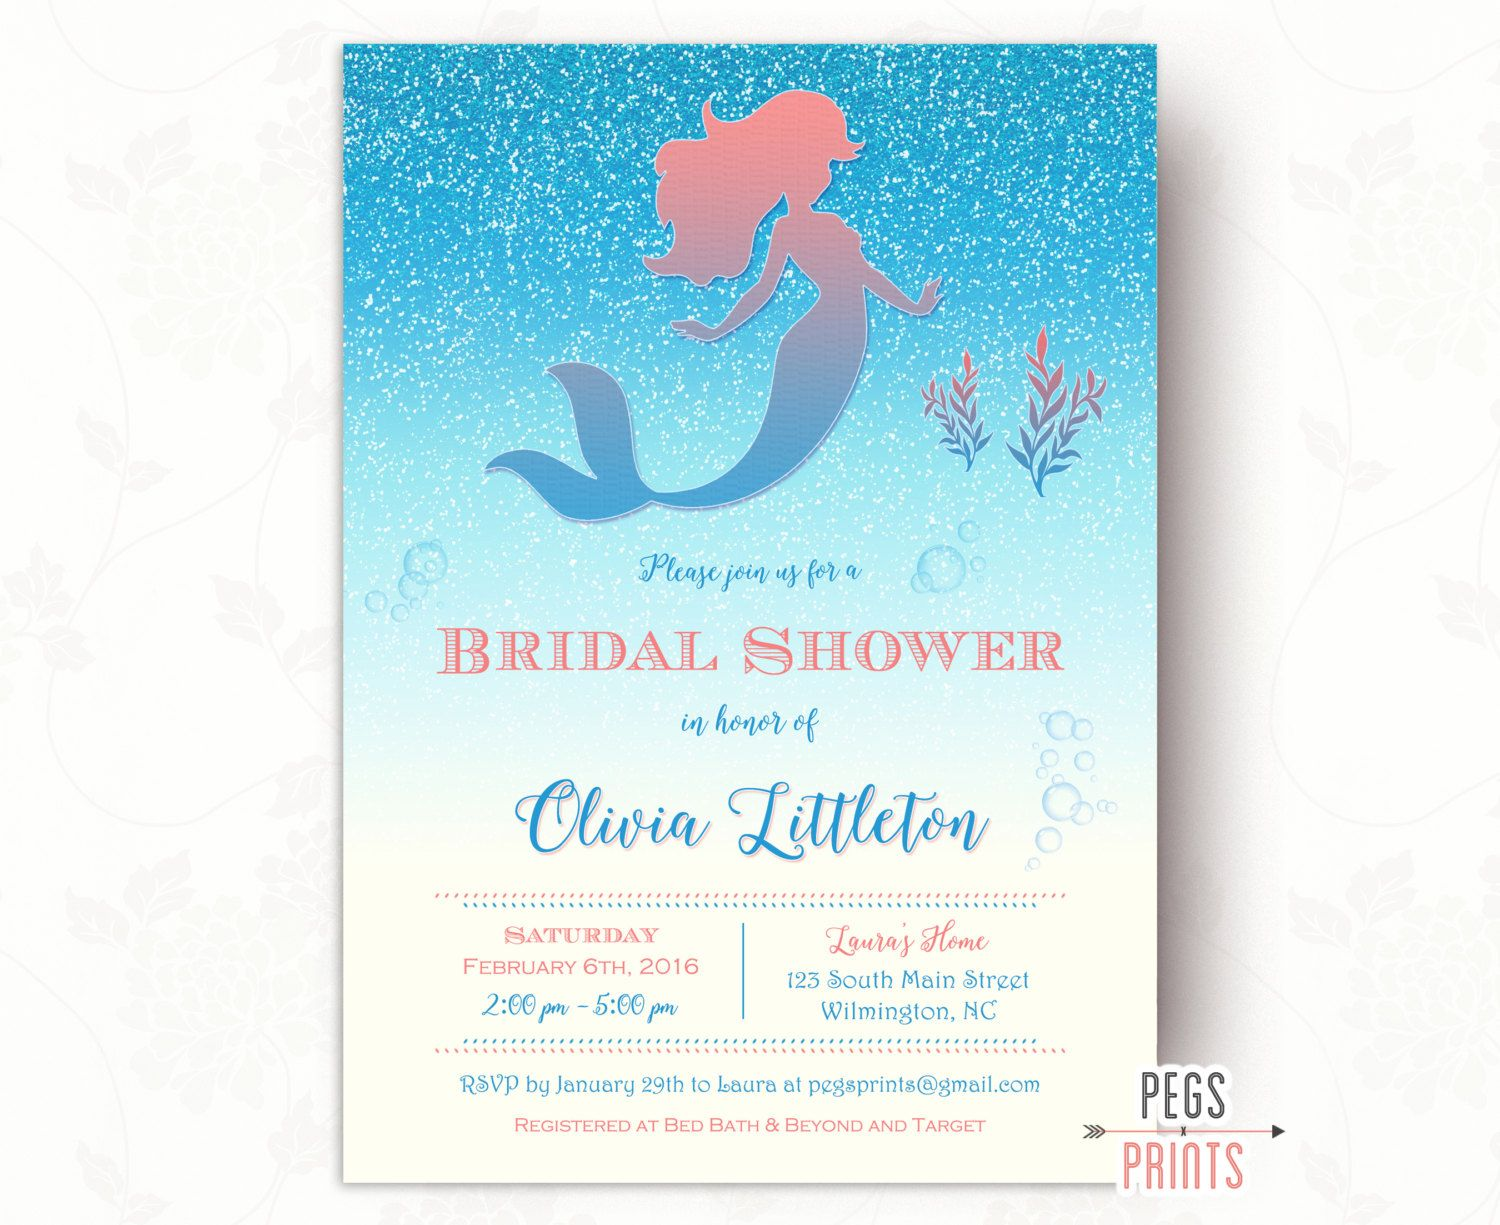 glitter mermaid bridal shower invitation printable under the sea bridal shower invitation fairytale bridal shower invitation coral by pegsprints on